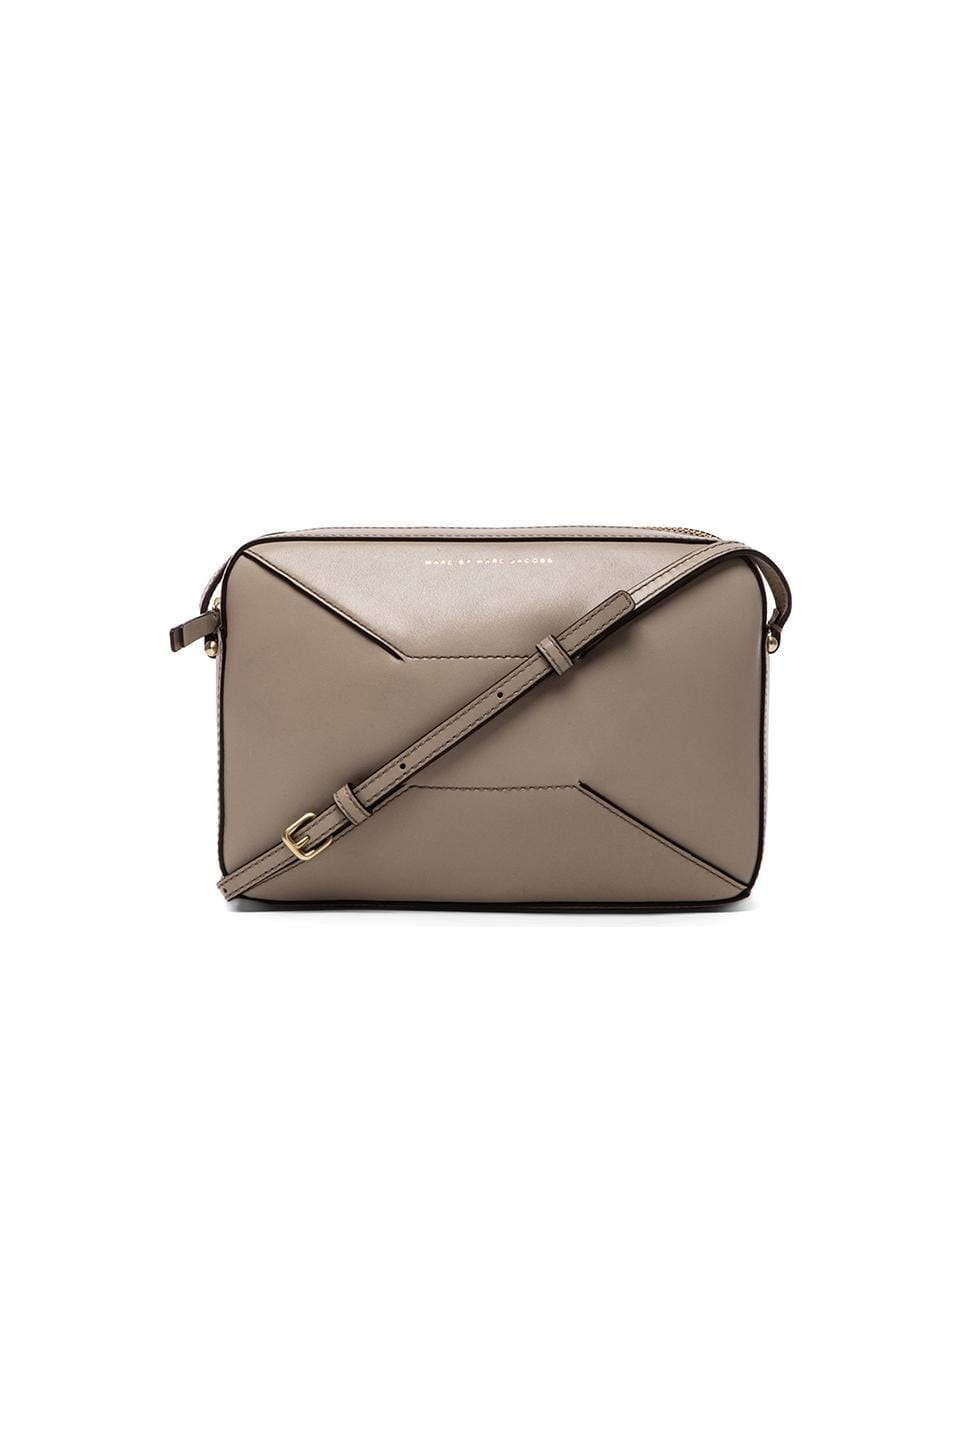 Marc by Marc Jacobs Hands Off Alex Crossbody in Pale Taupe